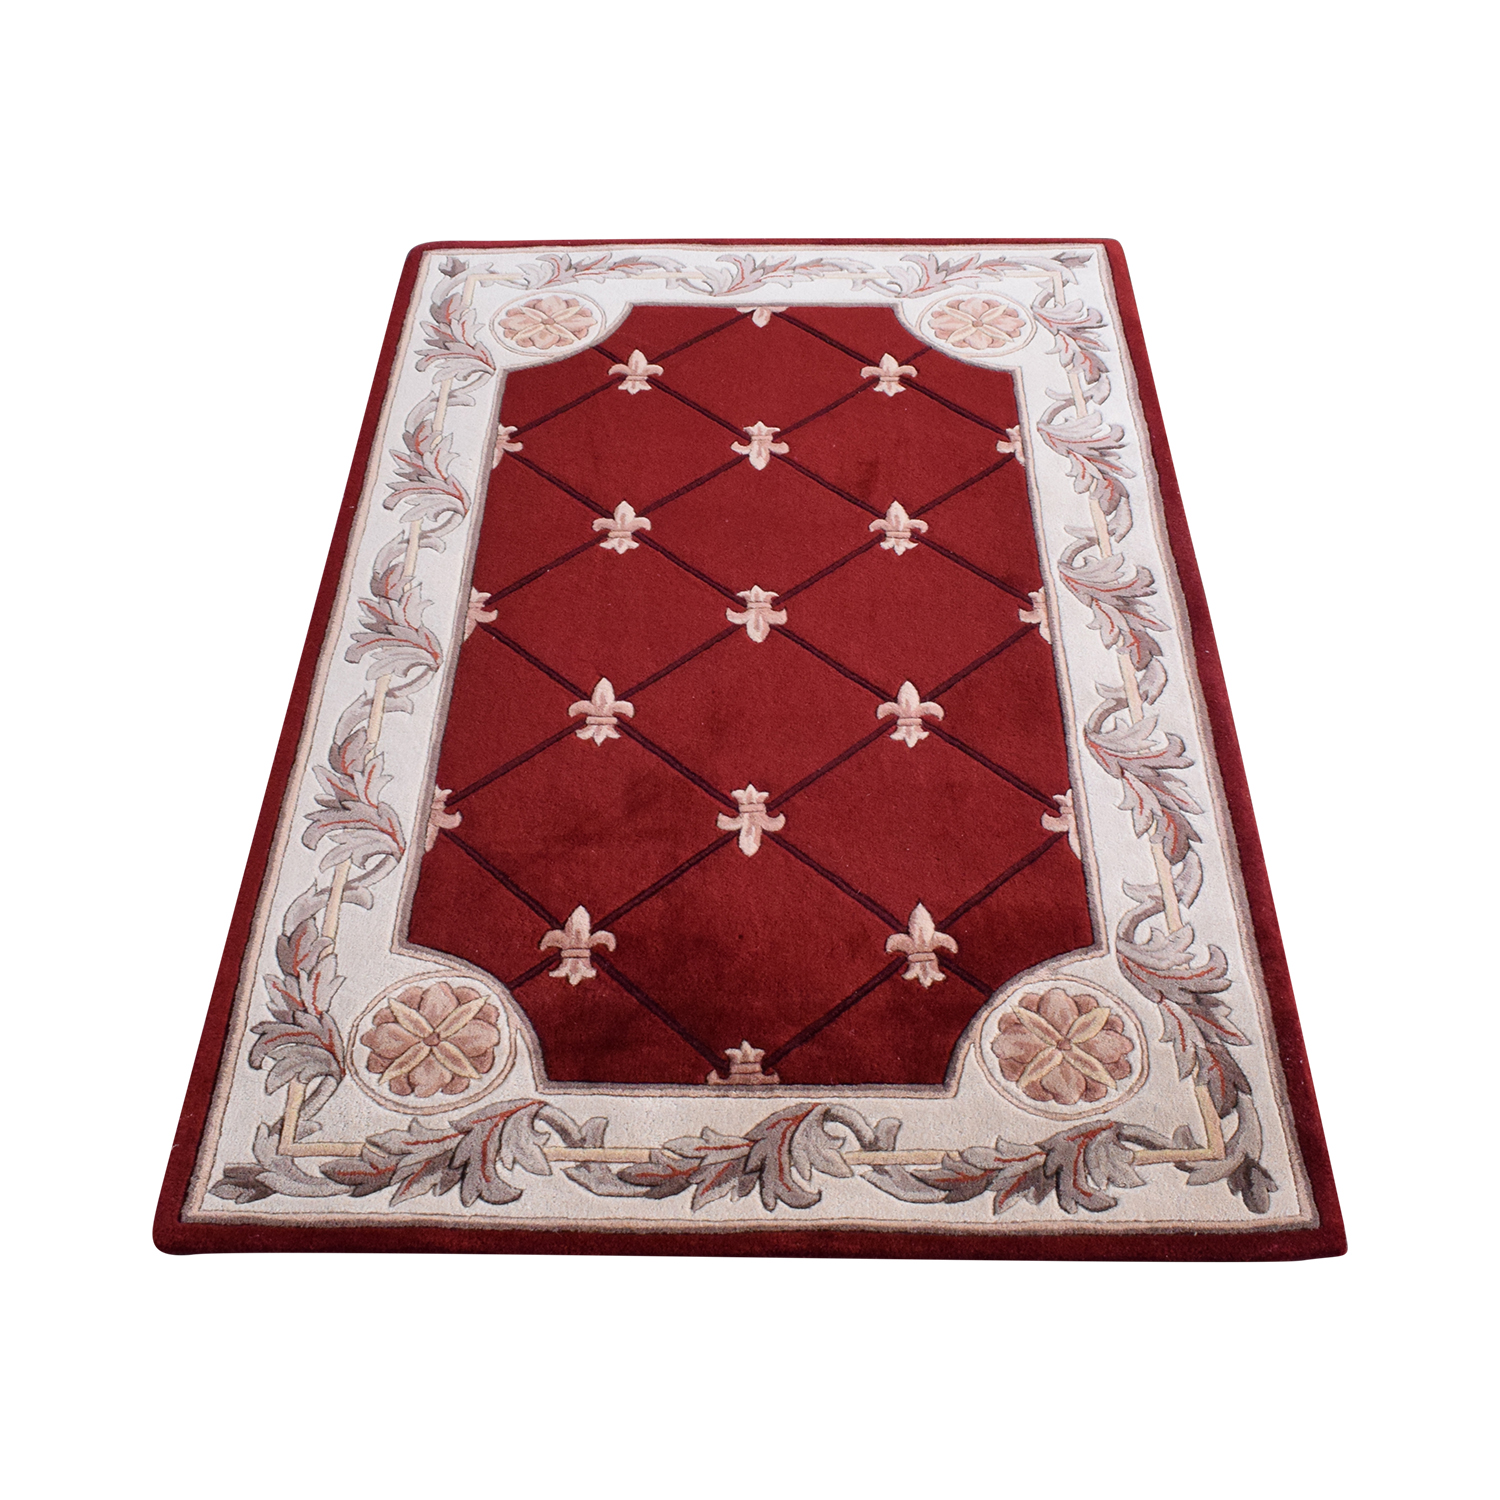 Macy's Kas Jewel Collection Classical Designed Red Area Rug / Decor